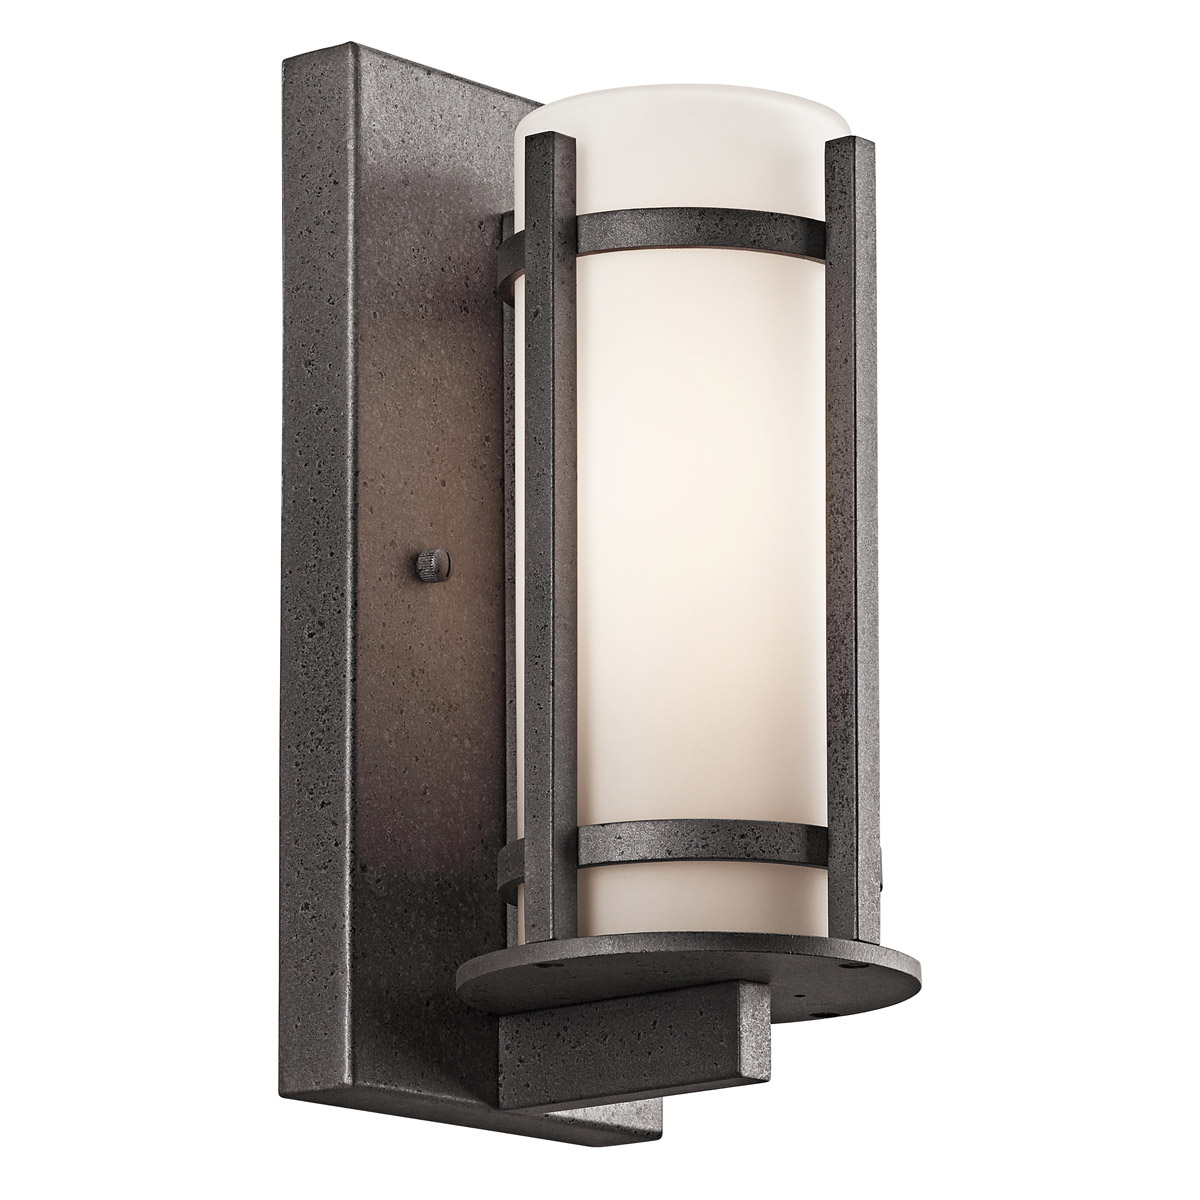 49119avi camden outdoor wall sconce kichler 49119avi camden outdoor wall sconce aloadofball